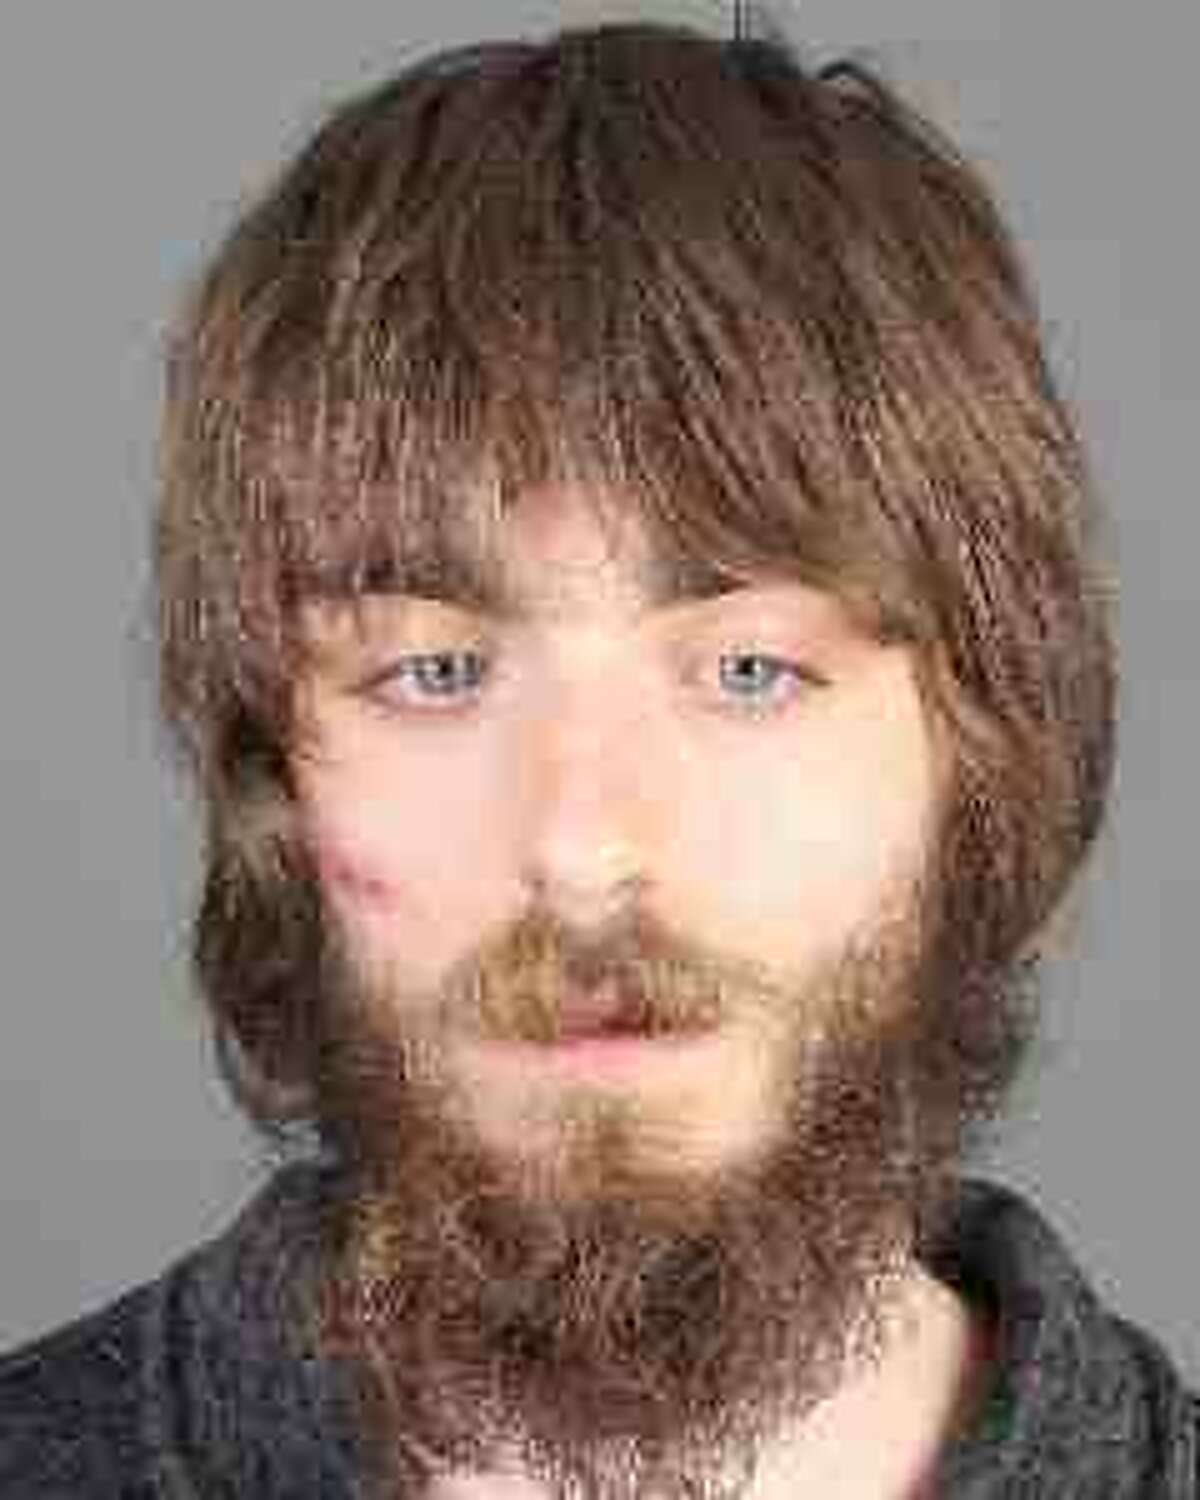 Bruce Syrell, 21 of Albany, was arrested April 22 night and charged with robbery, police said.